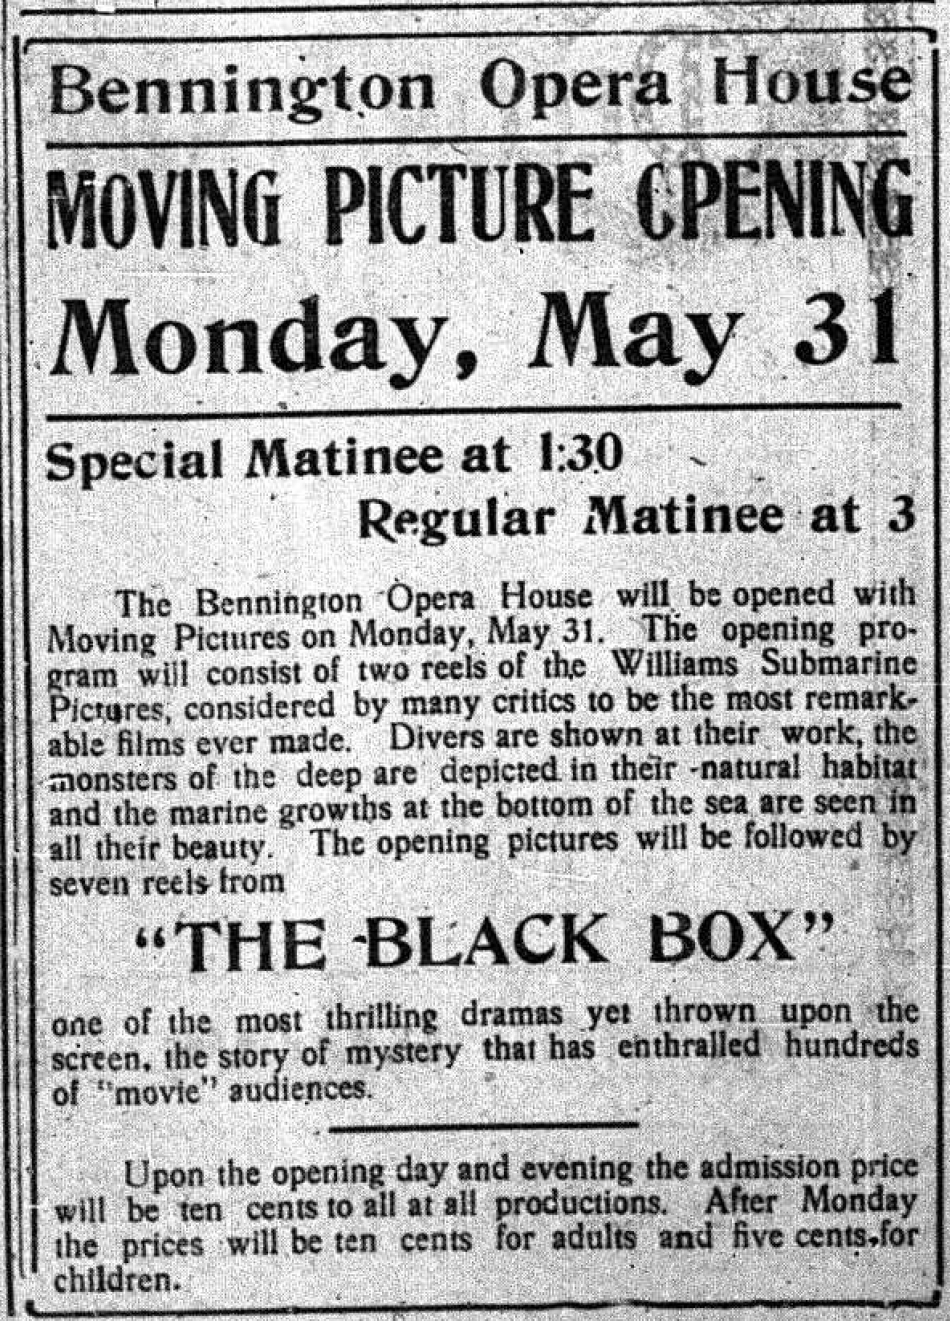 Opening day of films at the opera house. From the Bennington Evening Banner, May 28, 1915.